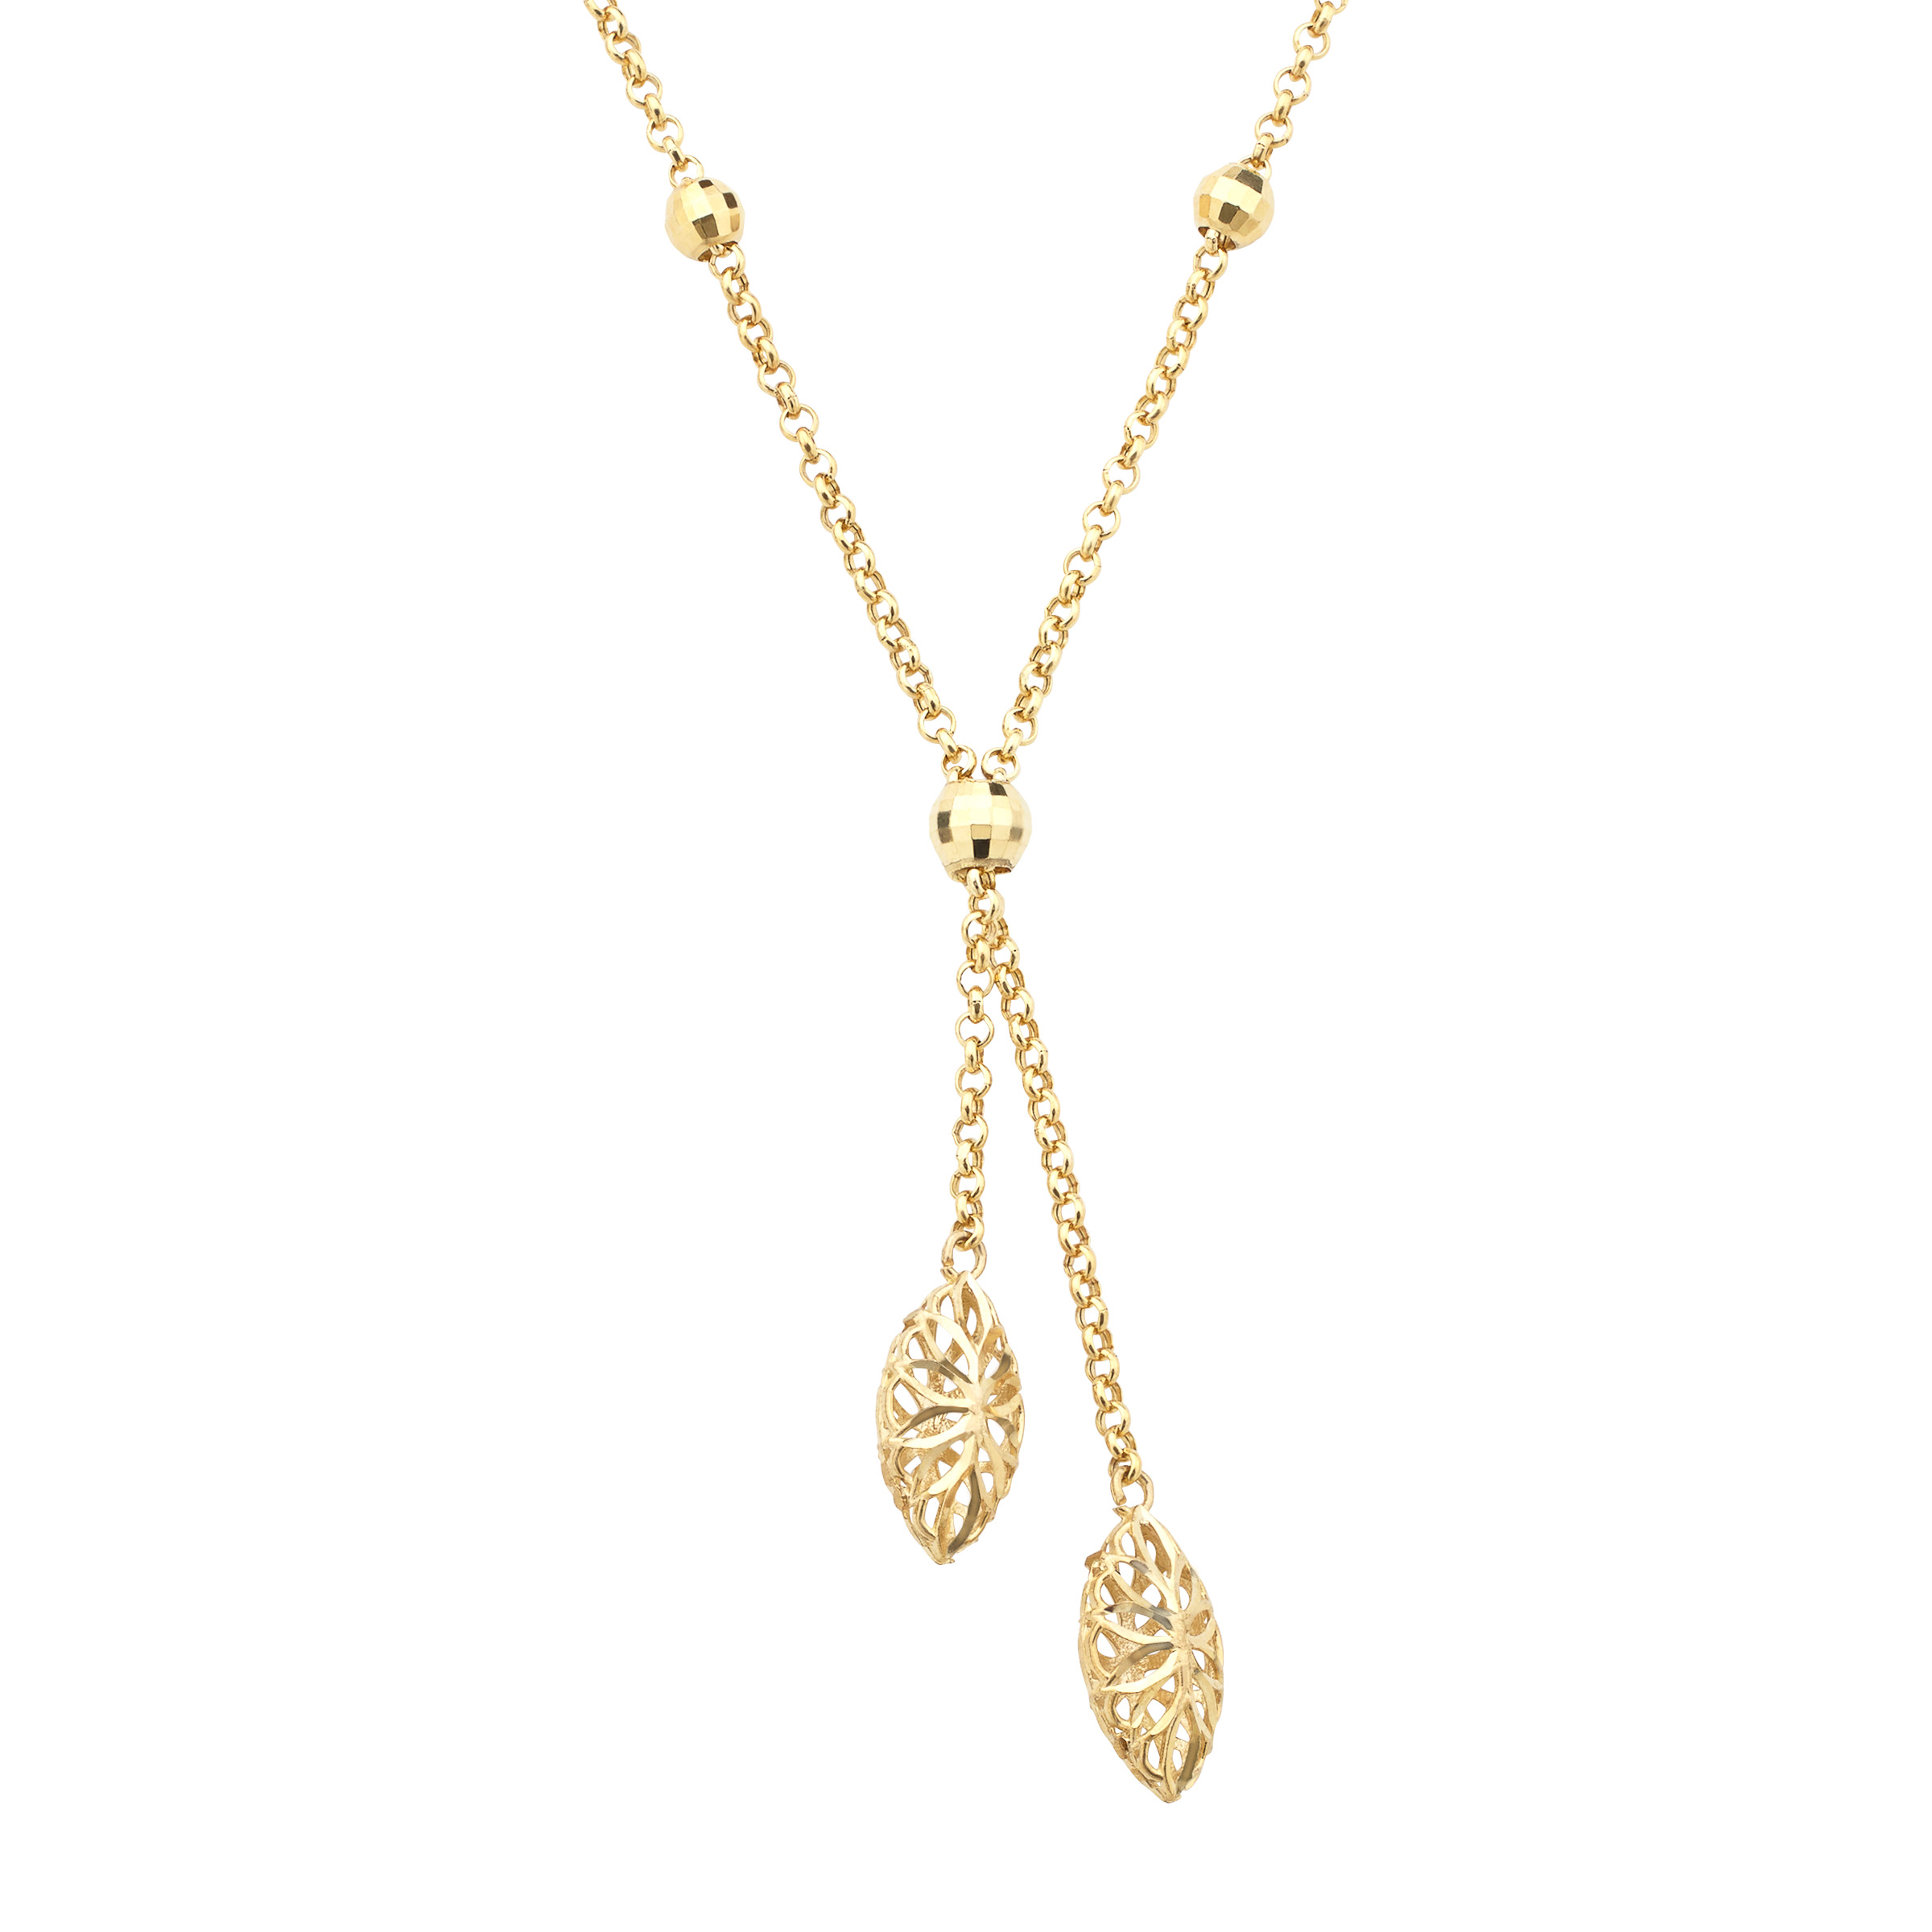 Just Gold Lariat Necklace in 10kt Gold